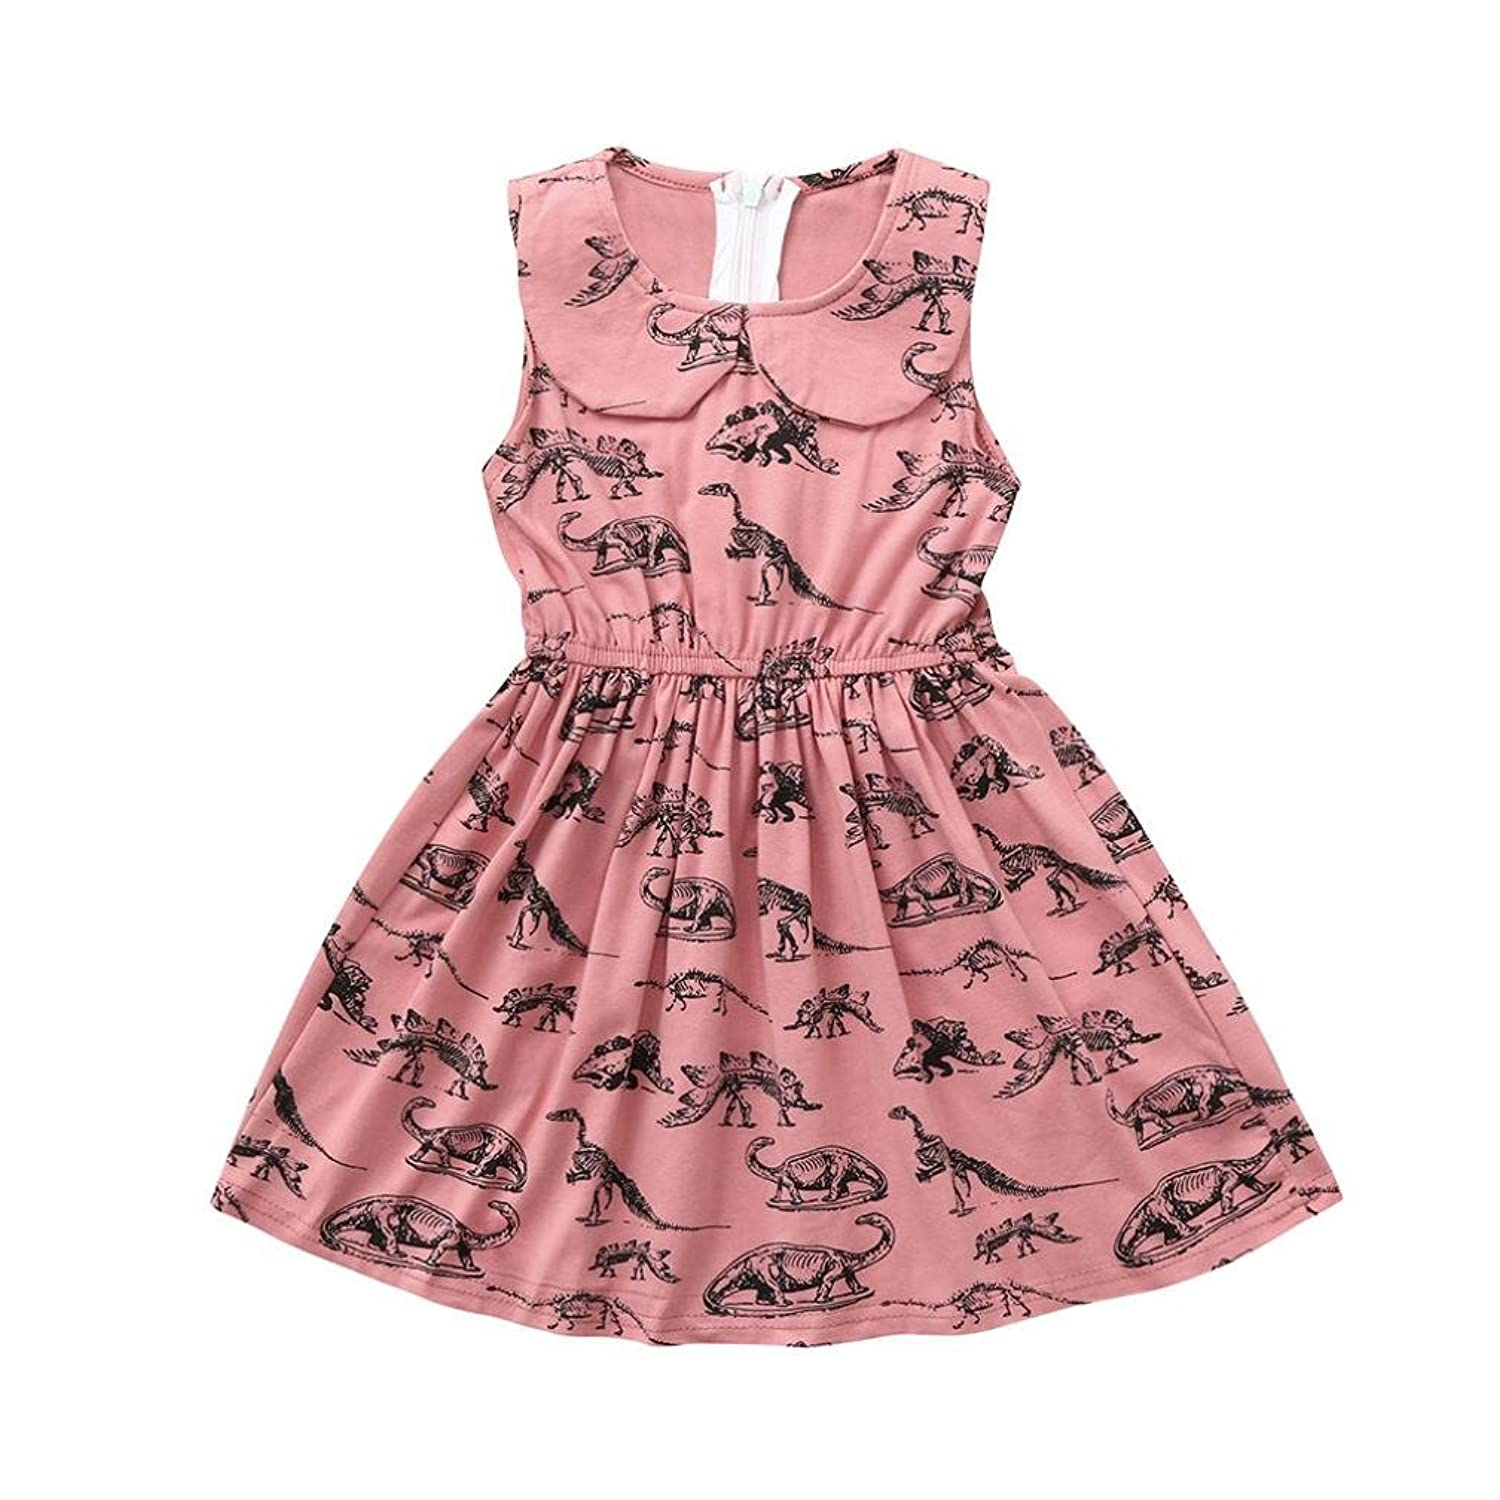 9a2b6da23fd93 Lightweight high quality Cotton Blend Material, Soft Comfortable hand  feeling, no any harm to your baby\'s skin ♚ Summer dresses for girls,perfect  for a ...